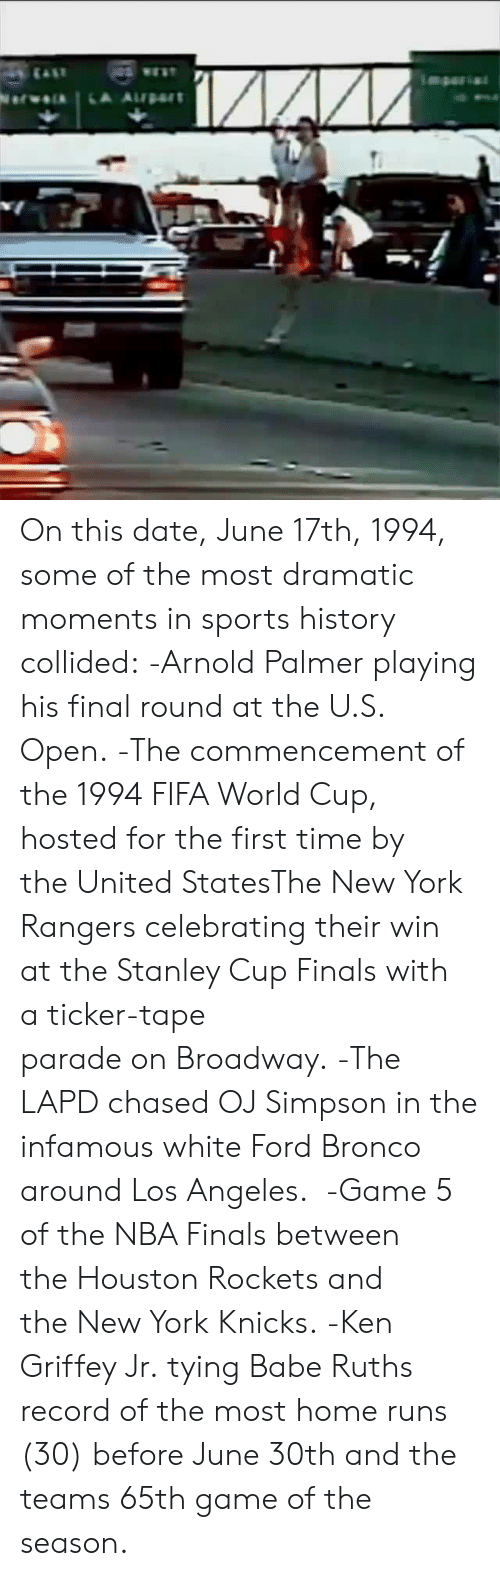 Houston Rockets: On this date, June 17th, 1994, some of the most dramatic moments in sports history collided:  -Arnold Palmerplaying his final round at theU.S. Open.  -The commencement of the1994 FIFA World Cup, hosted for the first time by theUnited StatesTheNew York Rangerscelebrating their win at theStanley Cup Finalswith aticker-tape paradeonBroadway.  -The LAPD chased OJ Simpson in the infamous white Ford Bronco around Los Angeles.  -Game 5 of theNBA Finalsbetween theHouston Rocketsand theNew York Knicks.  -Ken Griffey Jr.tyingBabe Ruths record of the most home runs (30) before June 30th and the teams 65th game of the season.